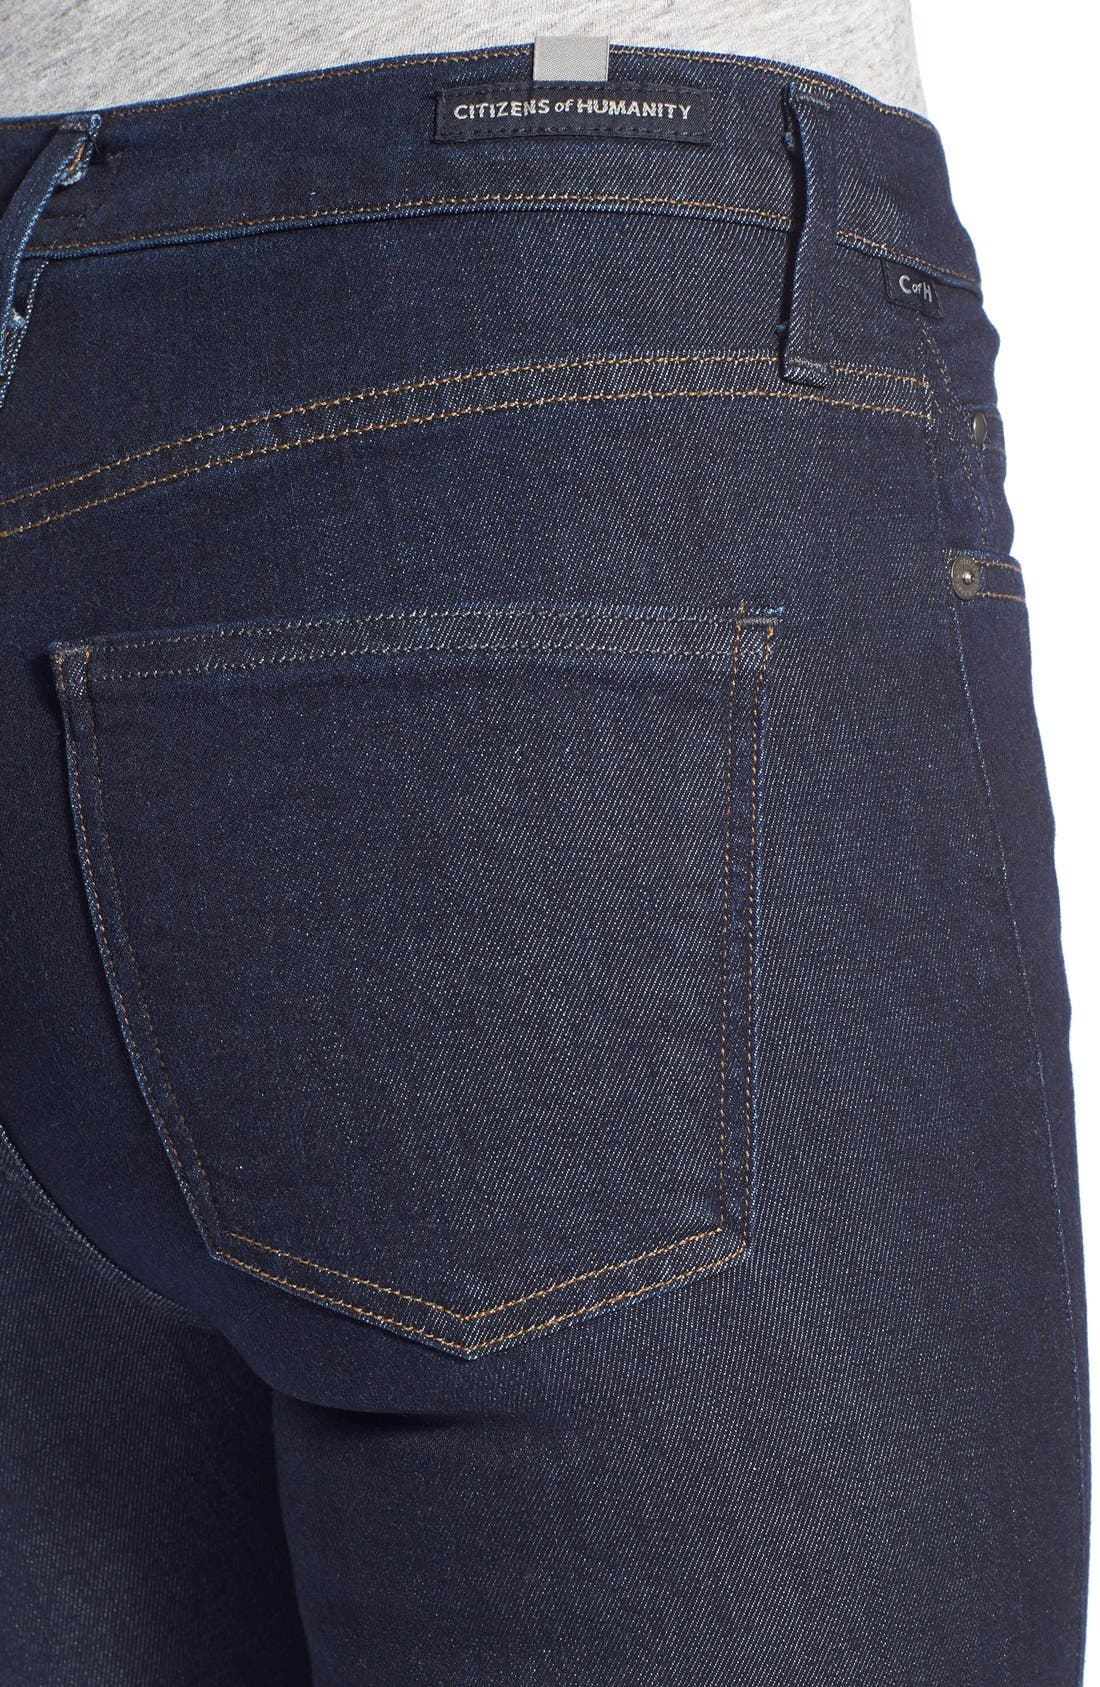 Alternate Image 4  - Citizens of Humanity 'Sculpt - Rocket' High Rise Skinny Jeans (Clean Blue)